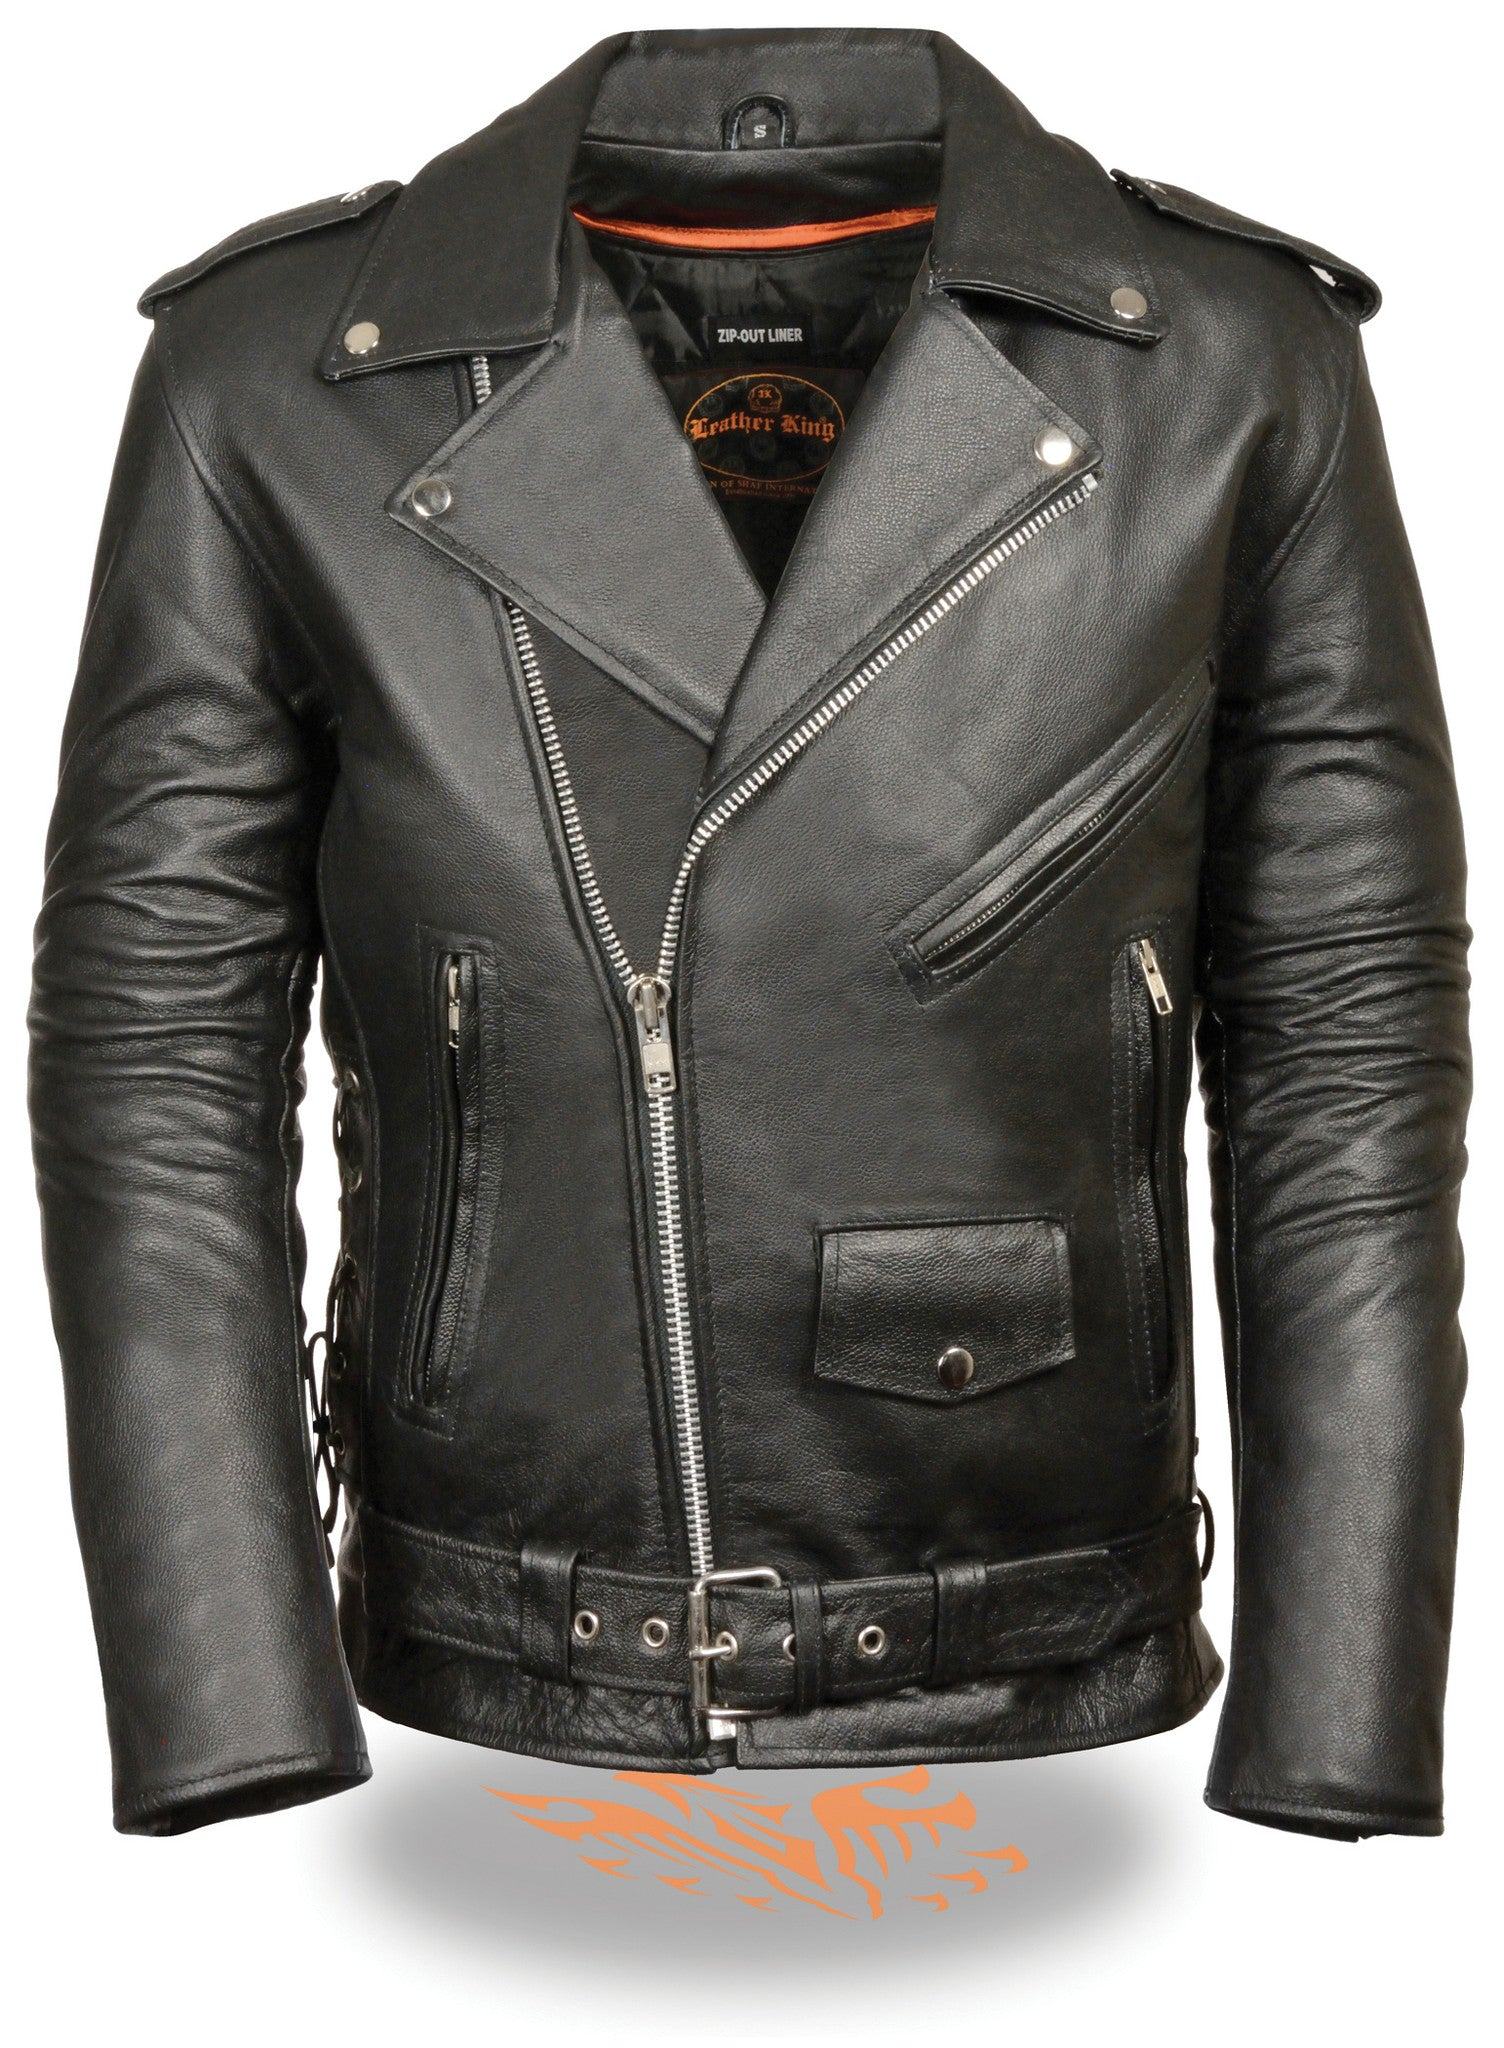 MEN'S MOTORCYCLE TALL JACKET W/ SIDE LACES POLICE TERMINATOR LEATHER JACKET